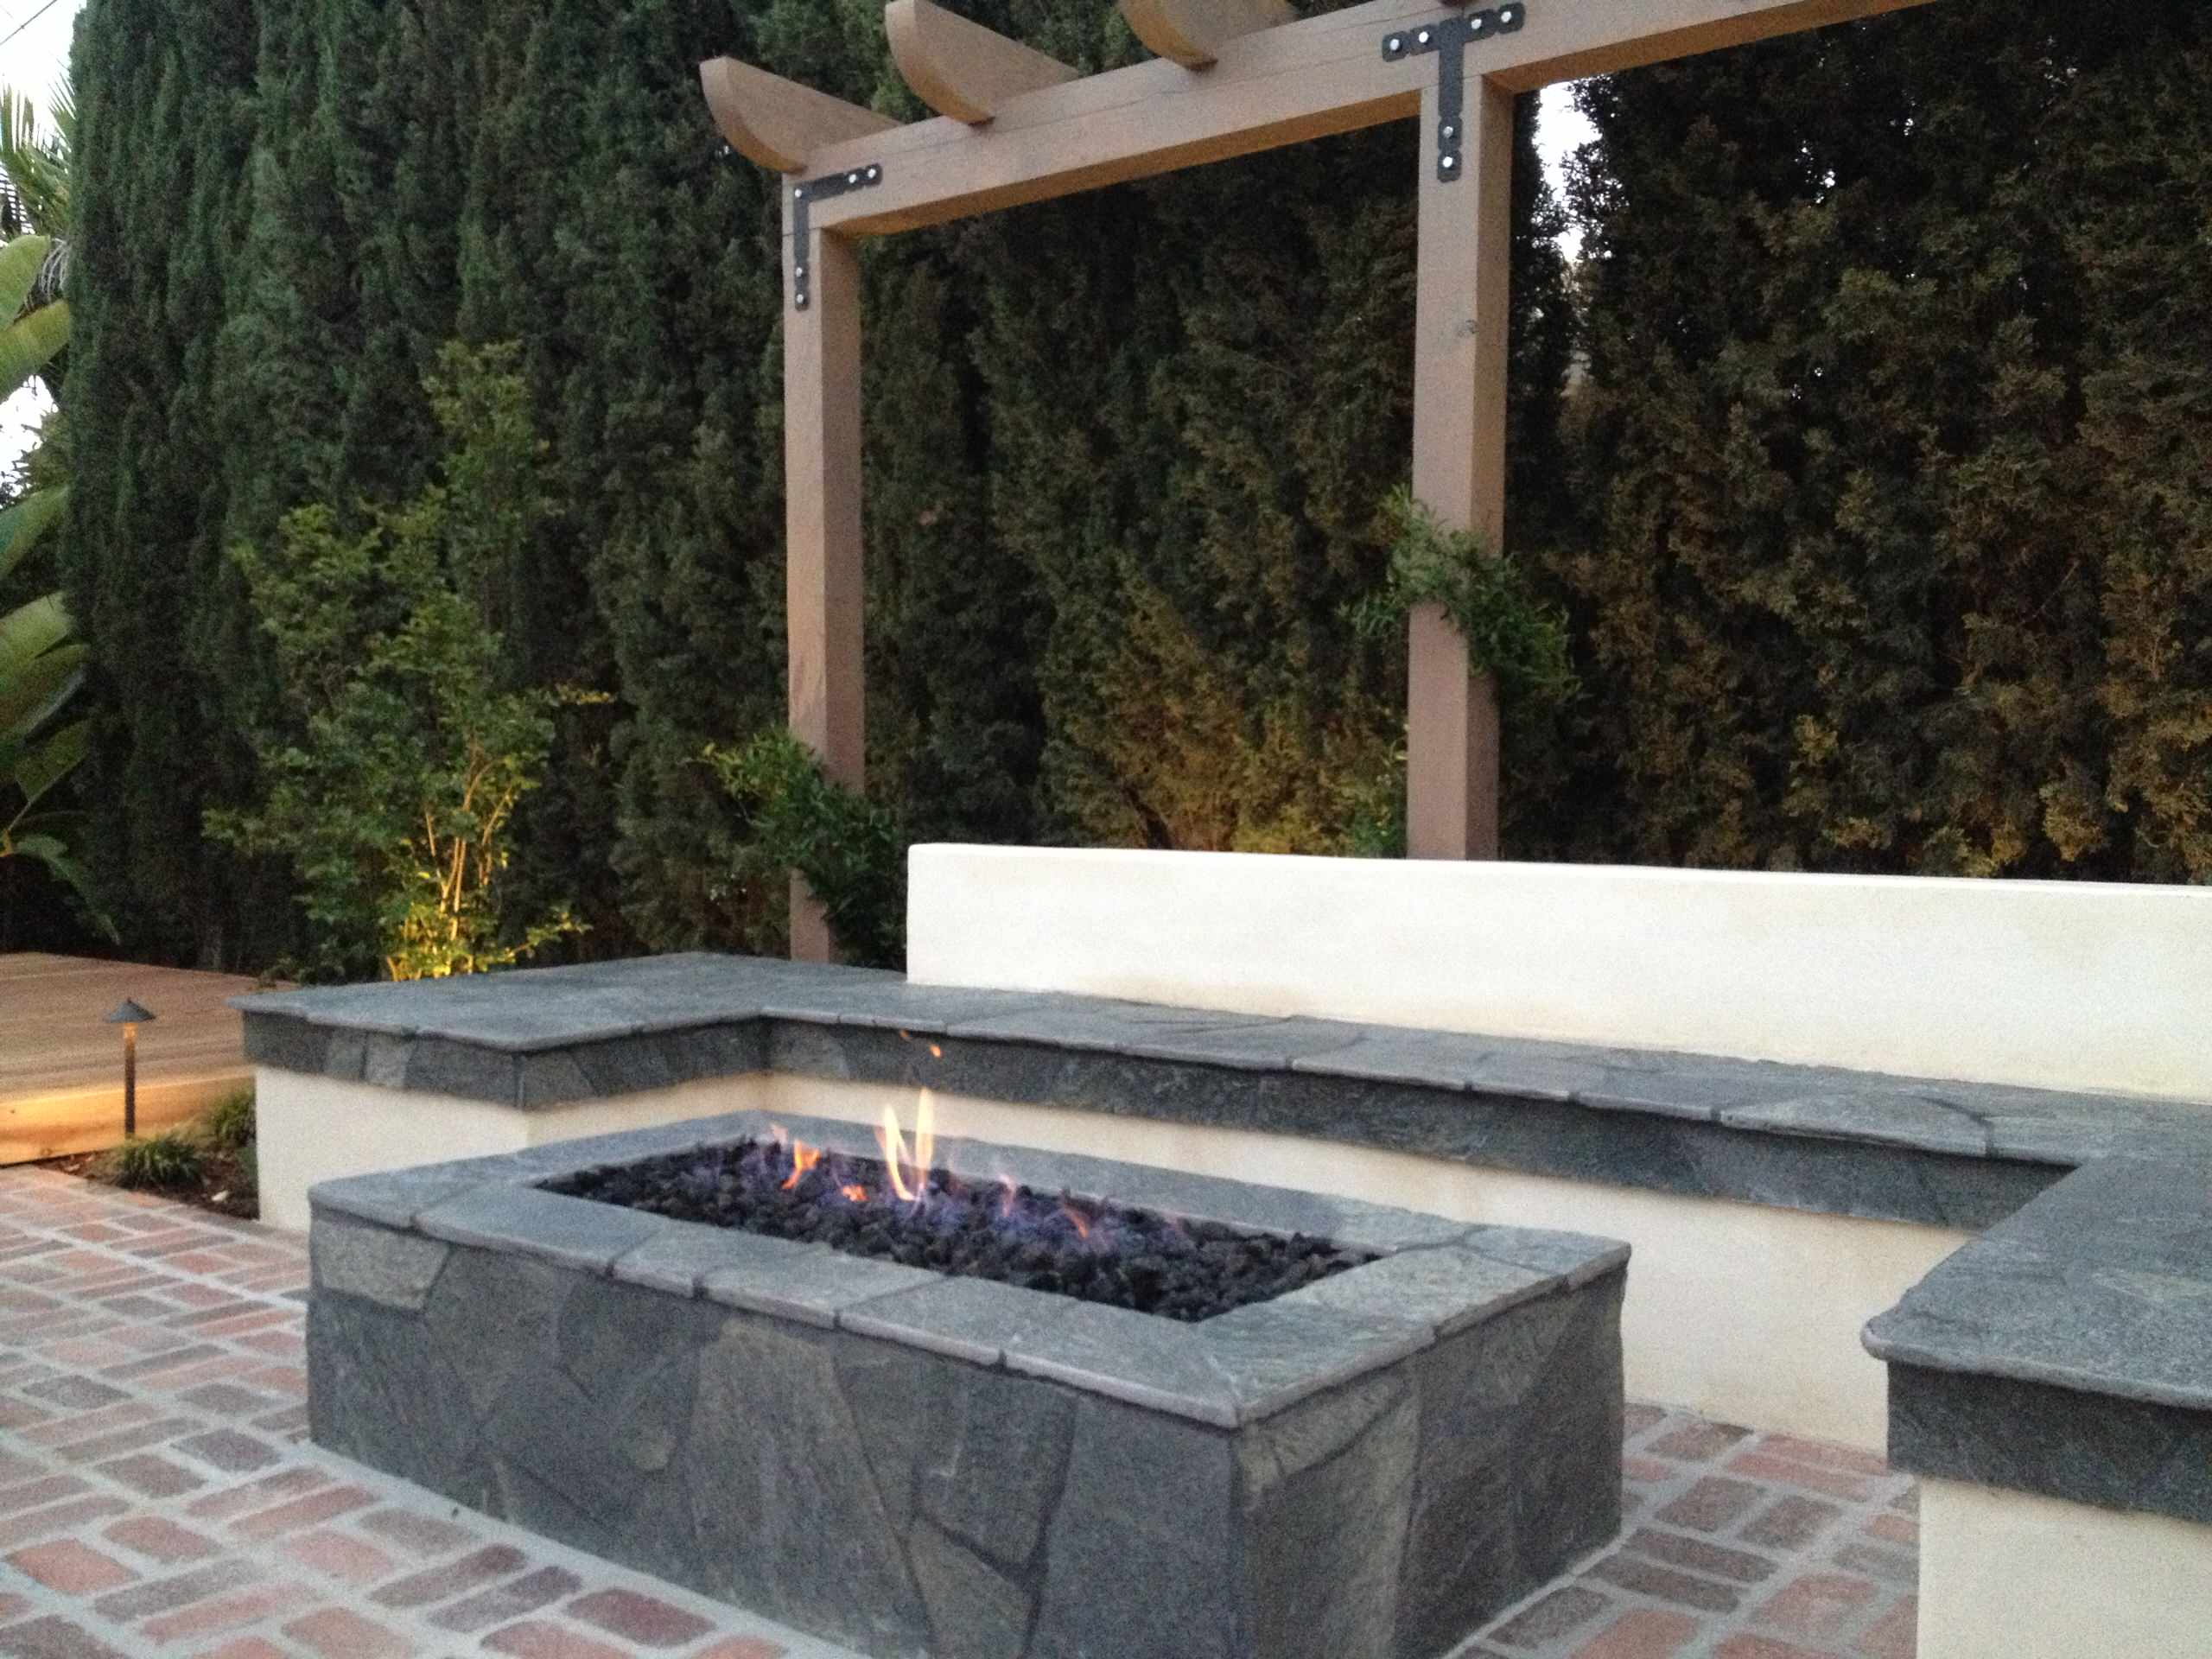 Kensington Outdoor Fire Pit Seating Lounge